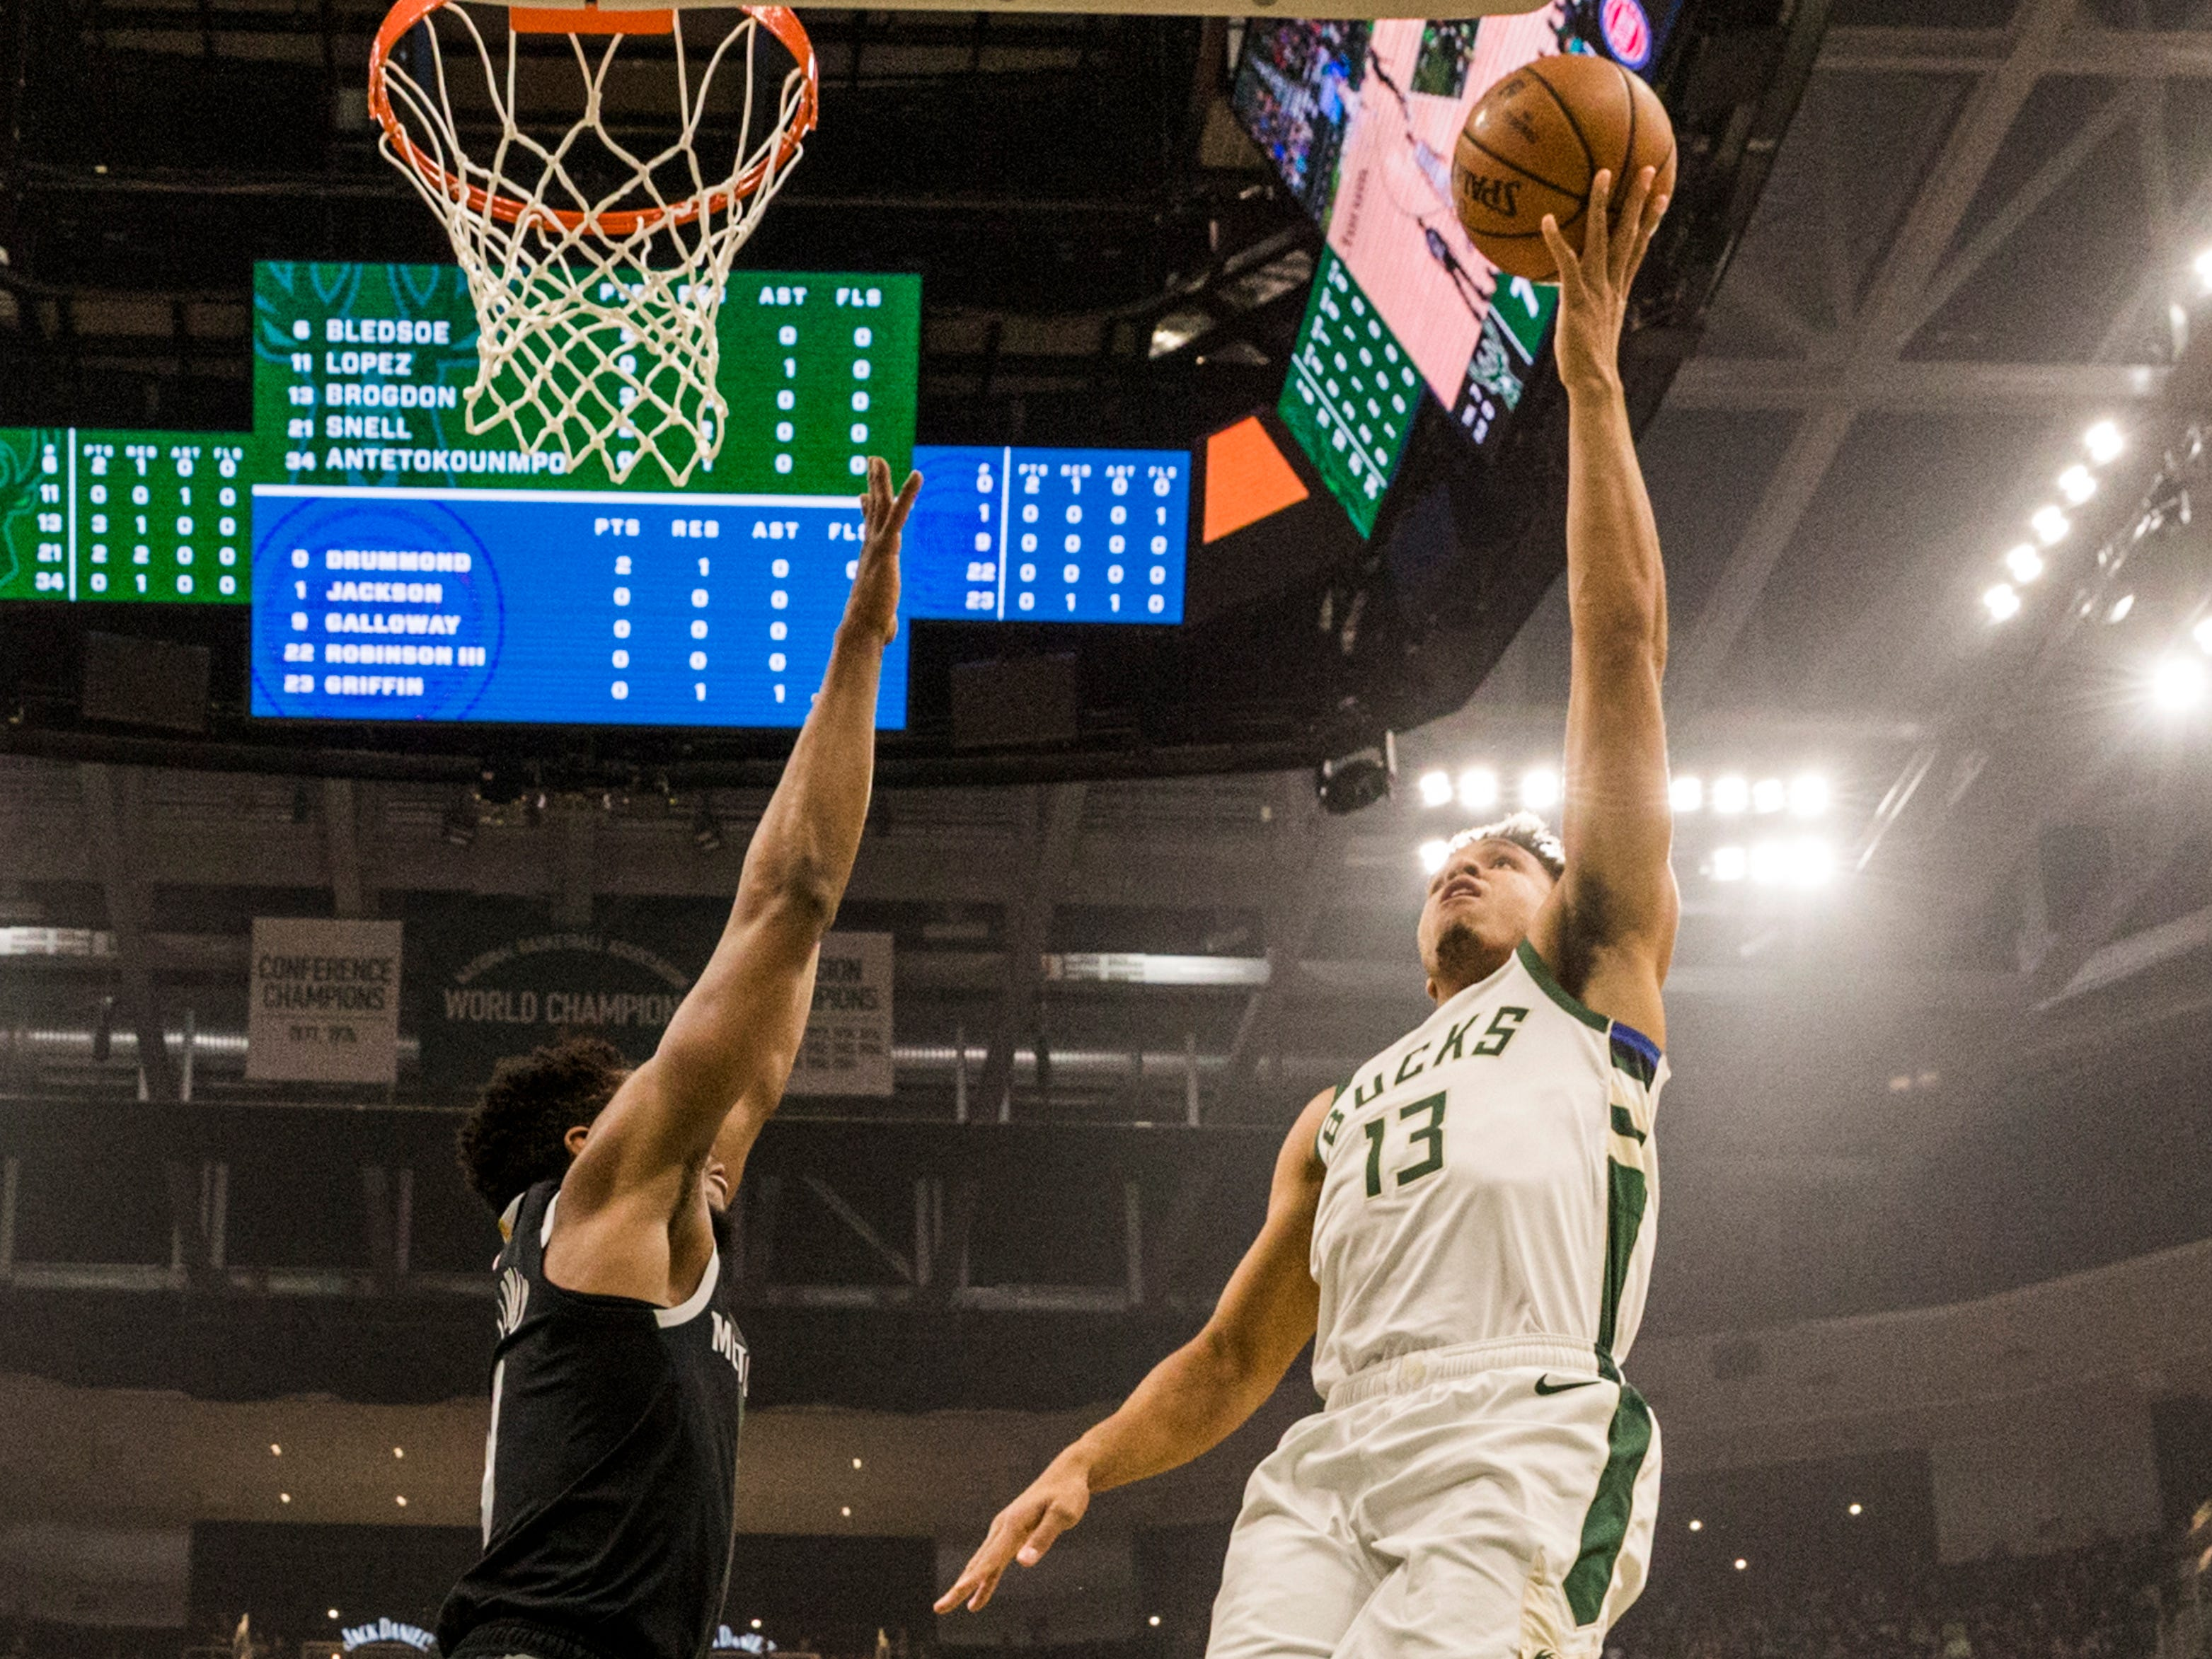 Bucks guard Malcolm Brogdon goes in for a layup against Langston Galloway of the Pistons on Wednesday night.